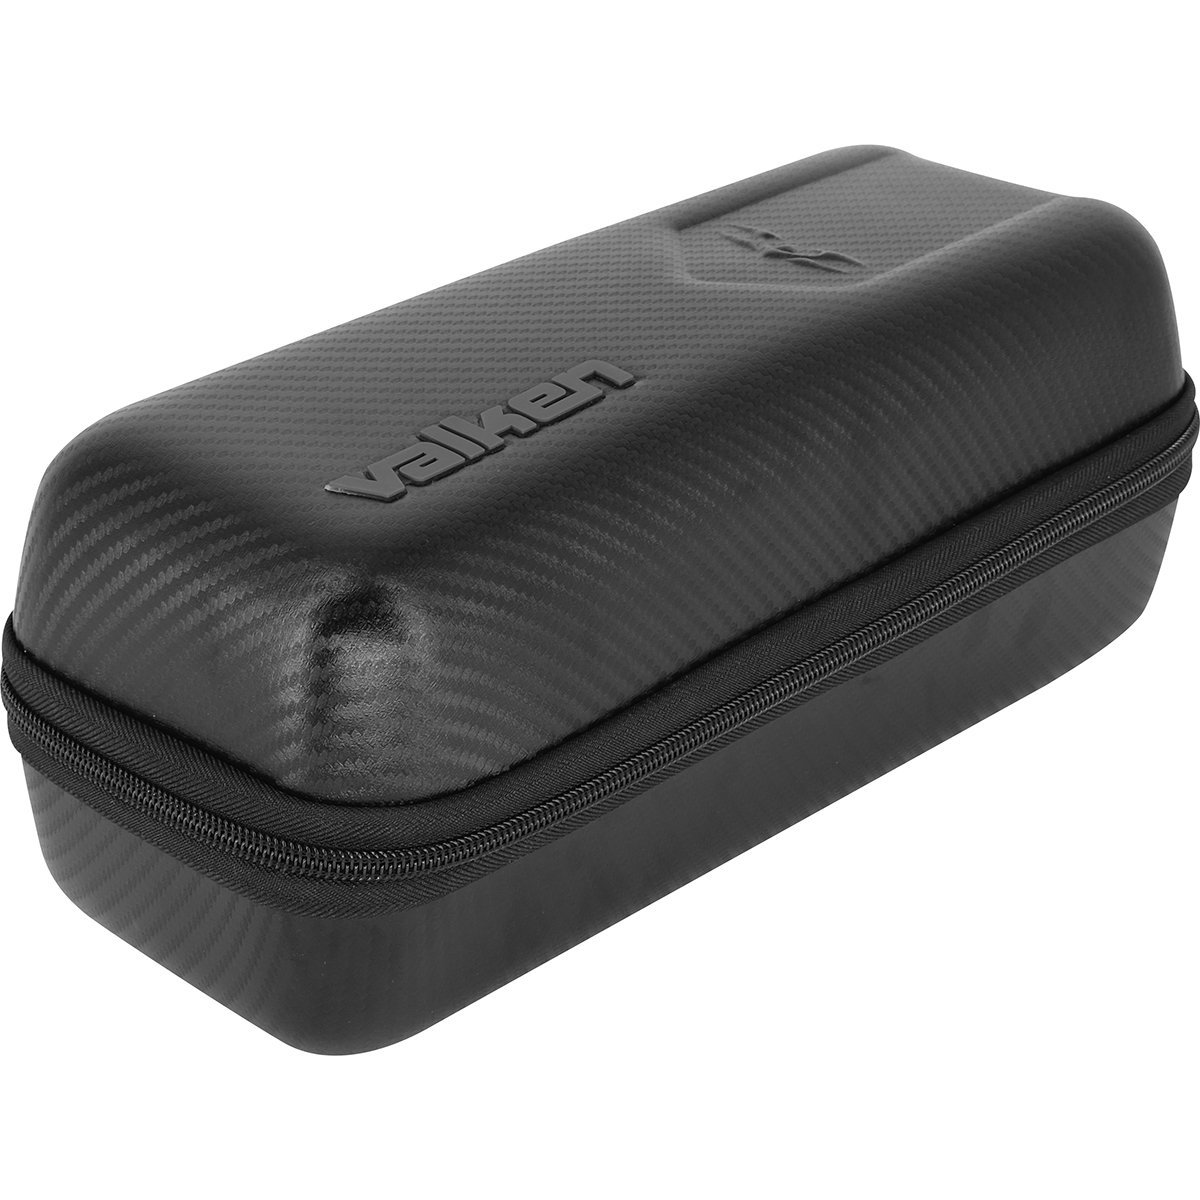 View larger image of Valken Agility Tank Case